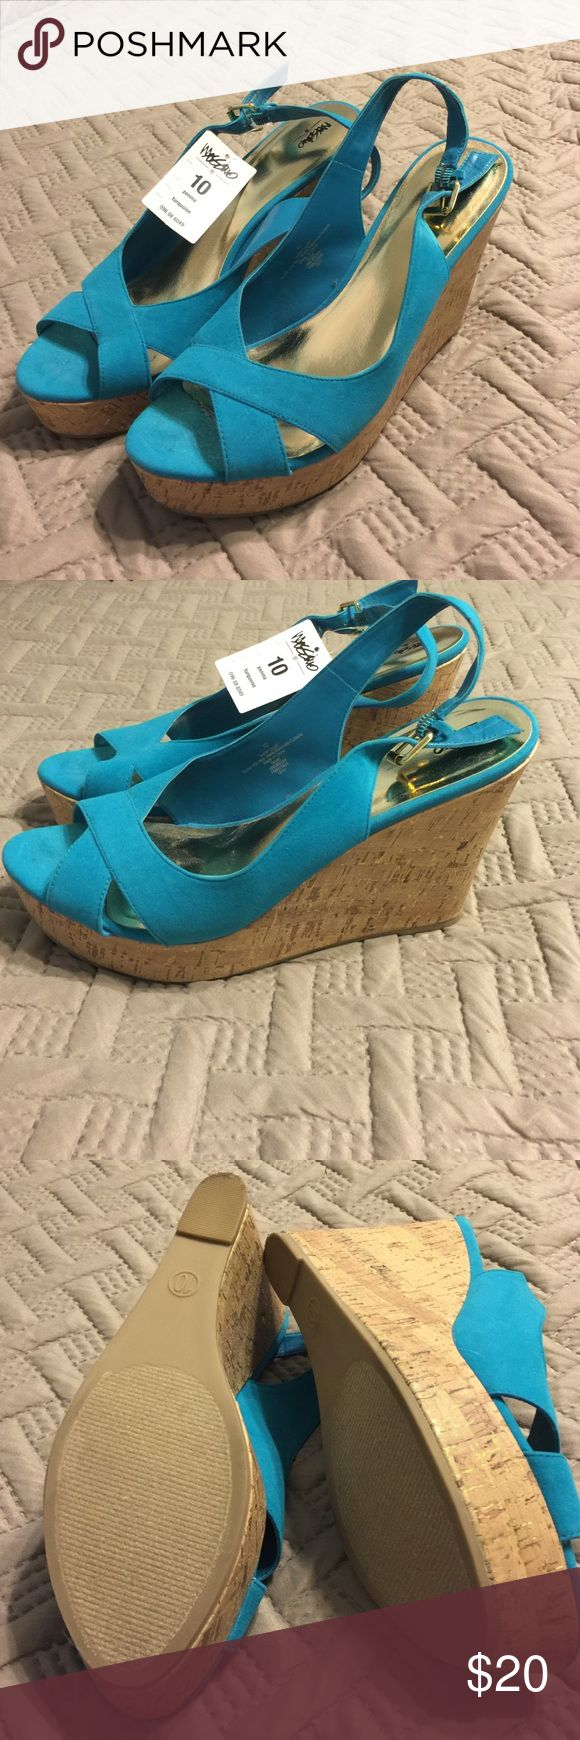 "NWT Turquoise Wedges Size 10 These wedges are great for the office, school, wedding, or any other special event! Brand new with tags, never worn.  5"" wedge. Clean, smoke free home. Mossimo Supply Co Shoes Wedges"